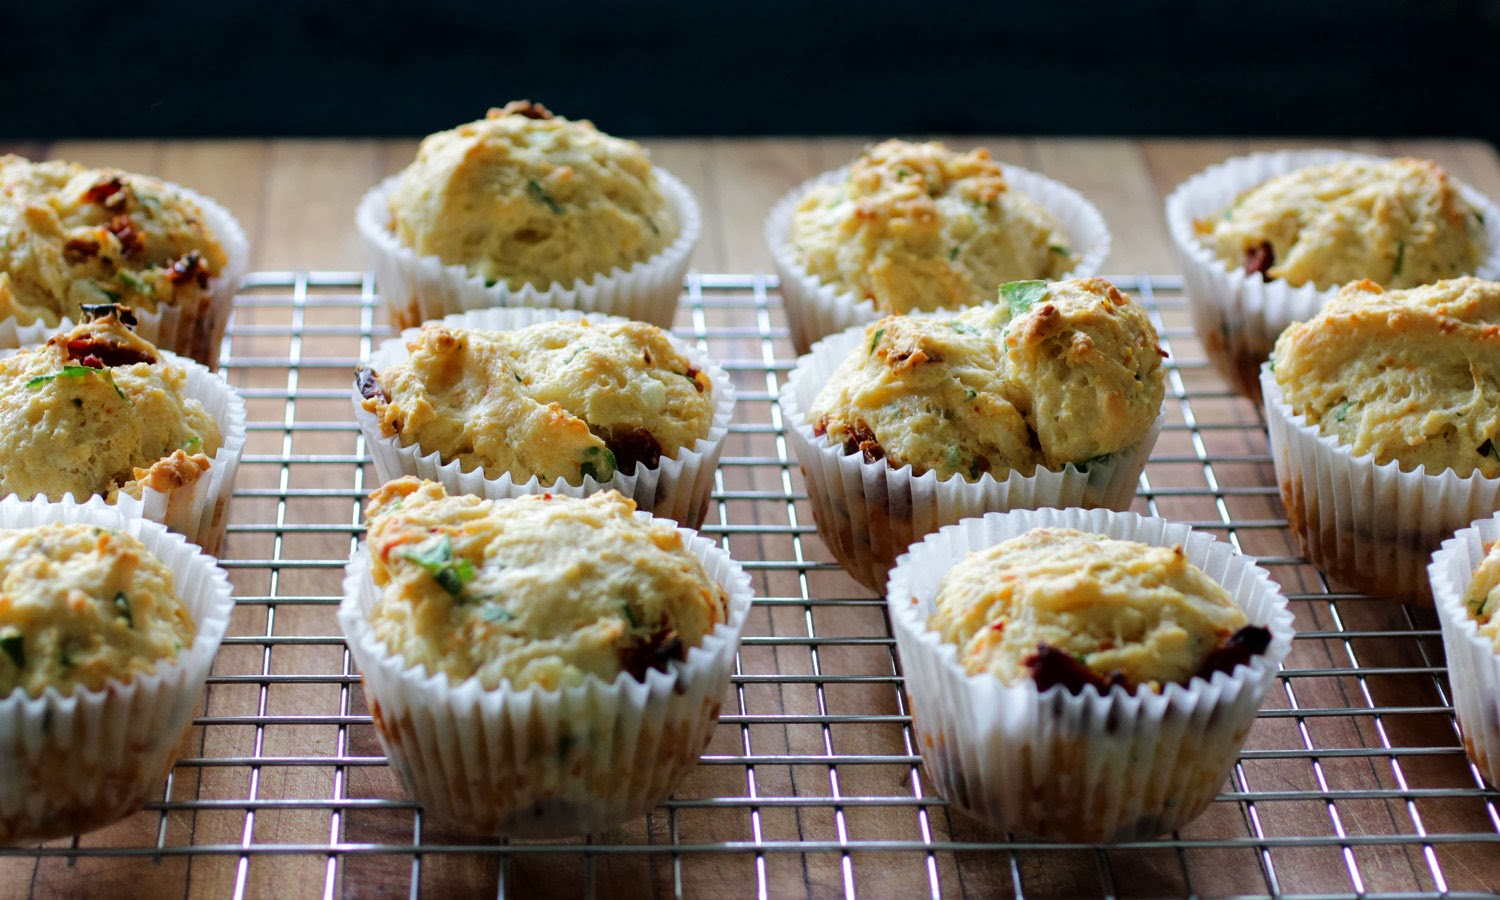 Simple Savory Sundried Tomato and Goat Cheese Muffins www.recipeficiton.com